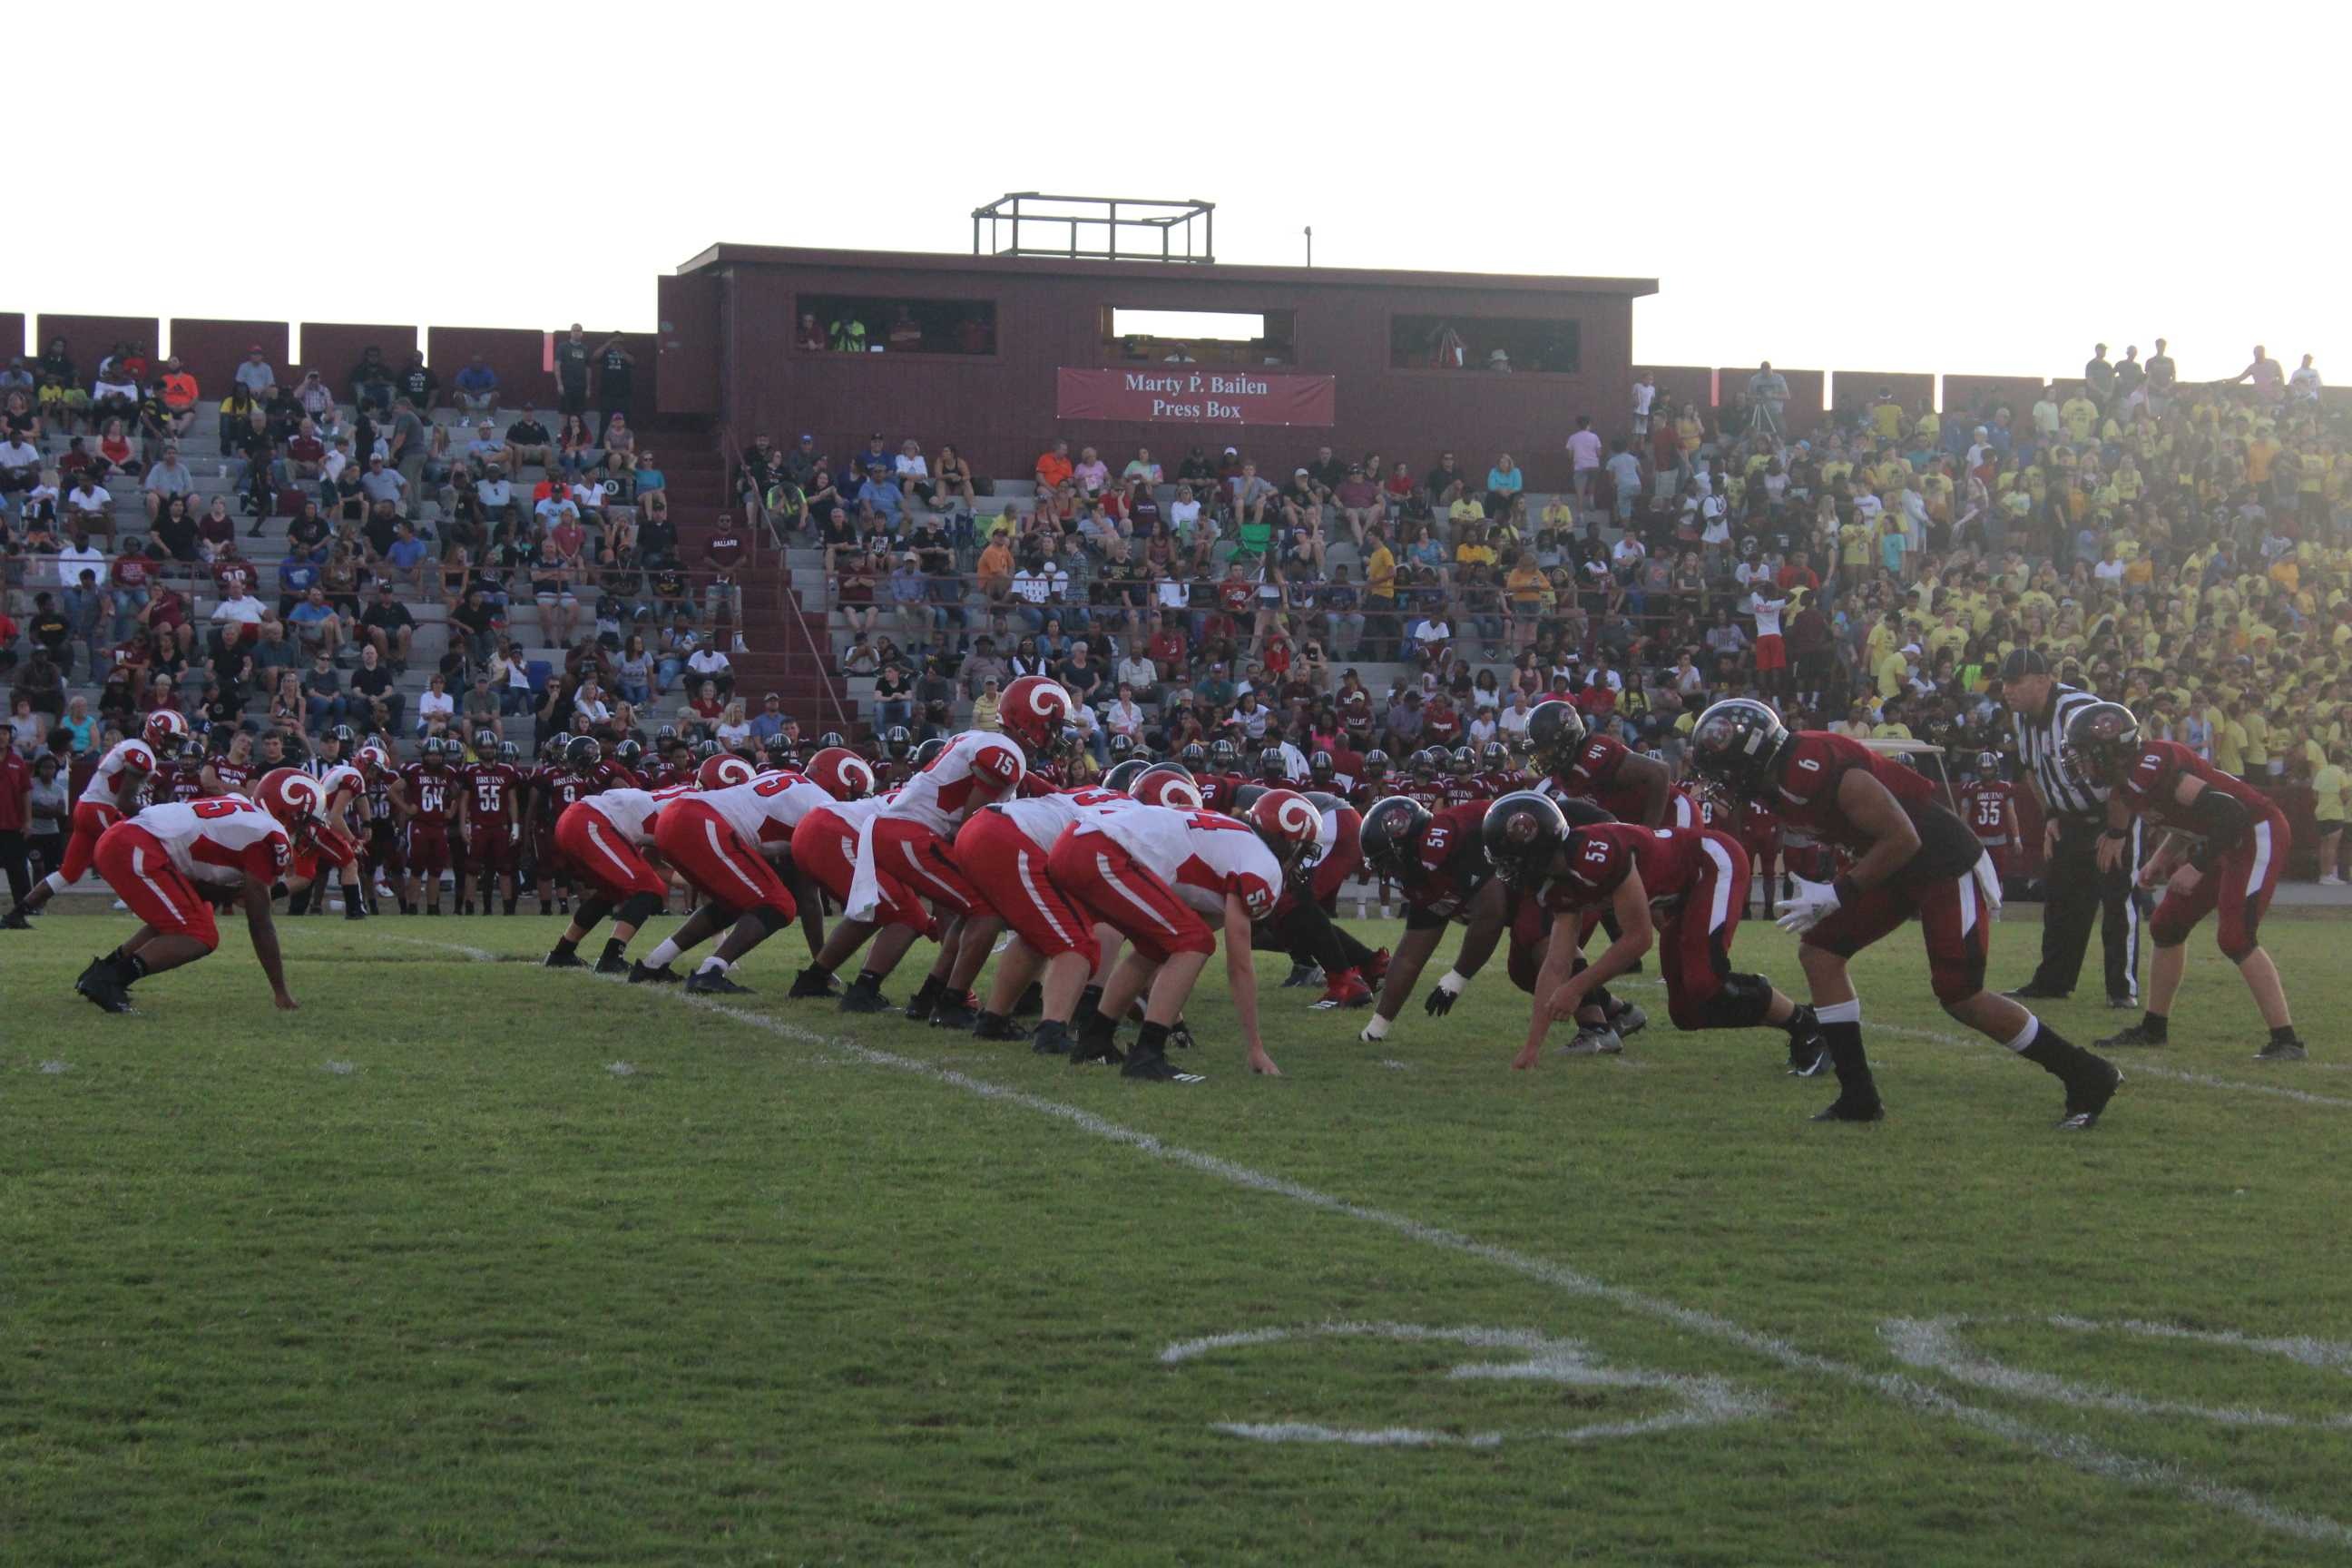 Manual+defense+lining+up+with+Ballard%27s+offense+at+the+30+yard+line.+Photo+by+Katelyn+Bale.